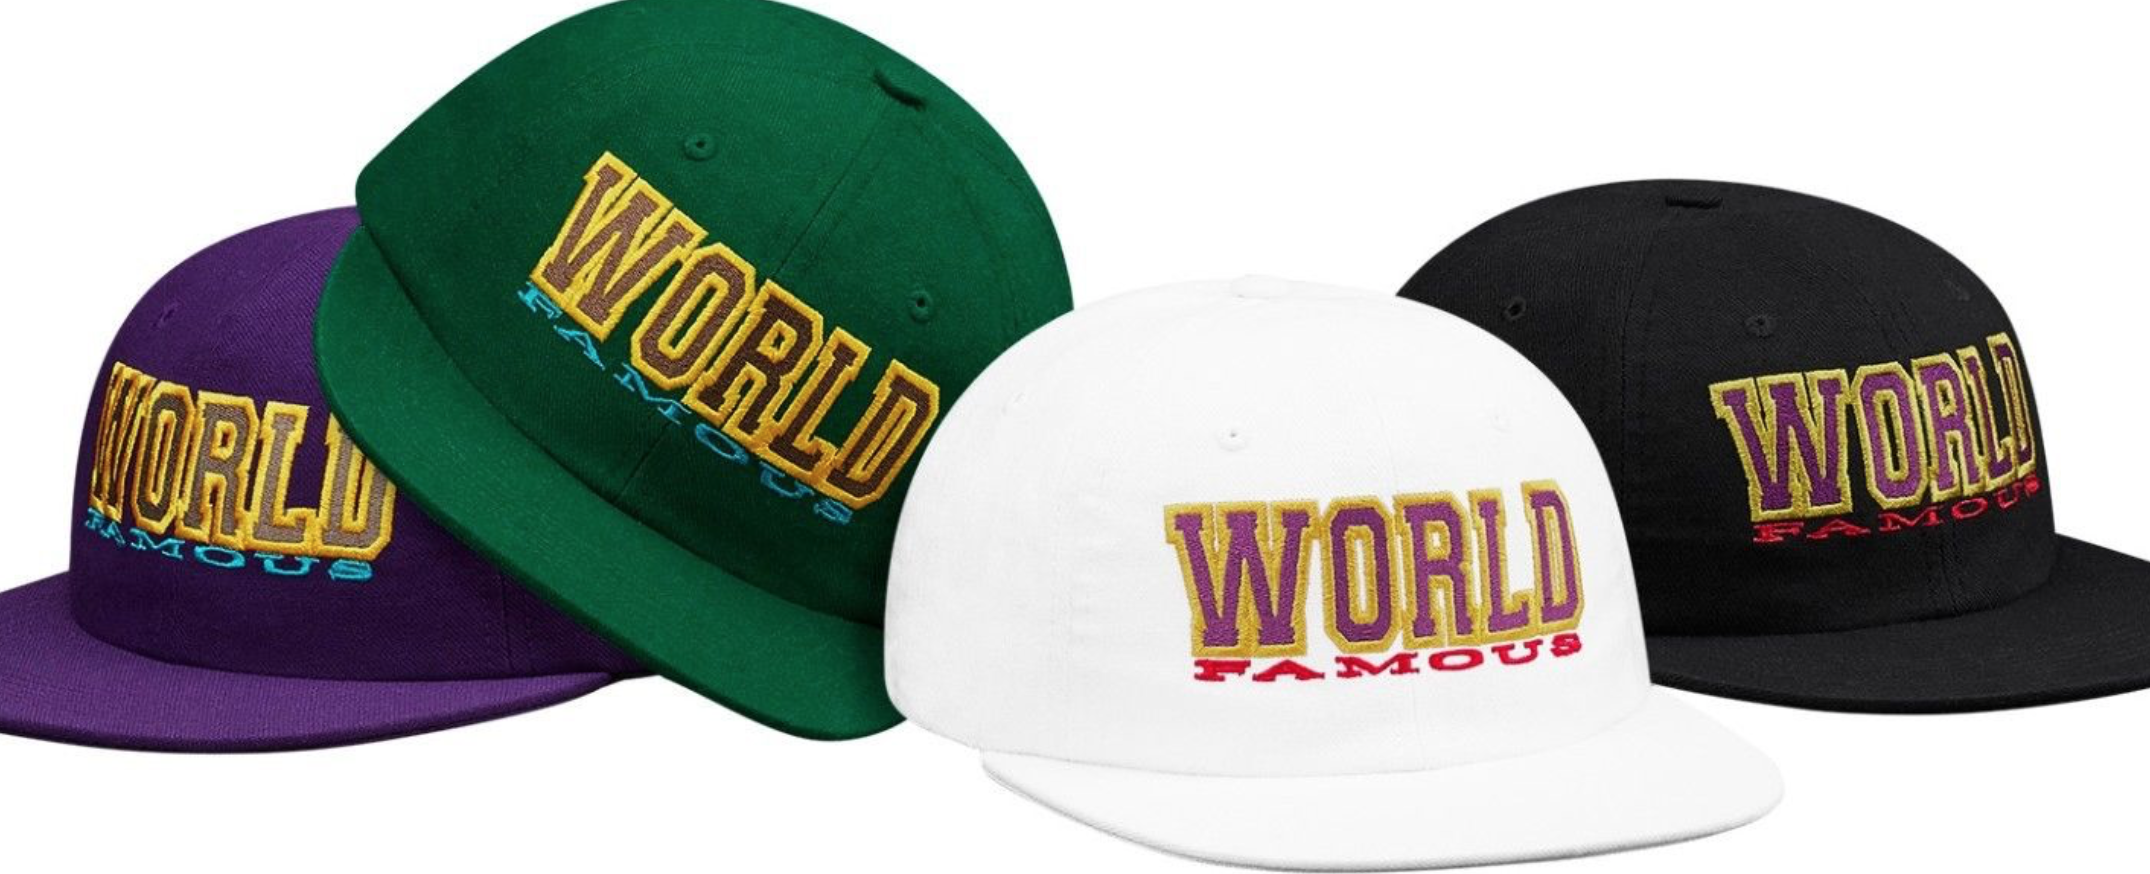 b71b00e983f Supreme NEW Supreme World Famous 6-Panel White Snapback Hat Size one size -  Hats for Sale - Grailed